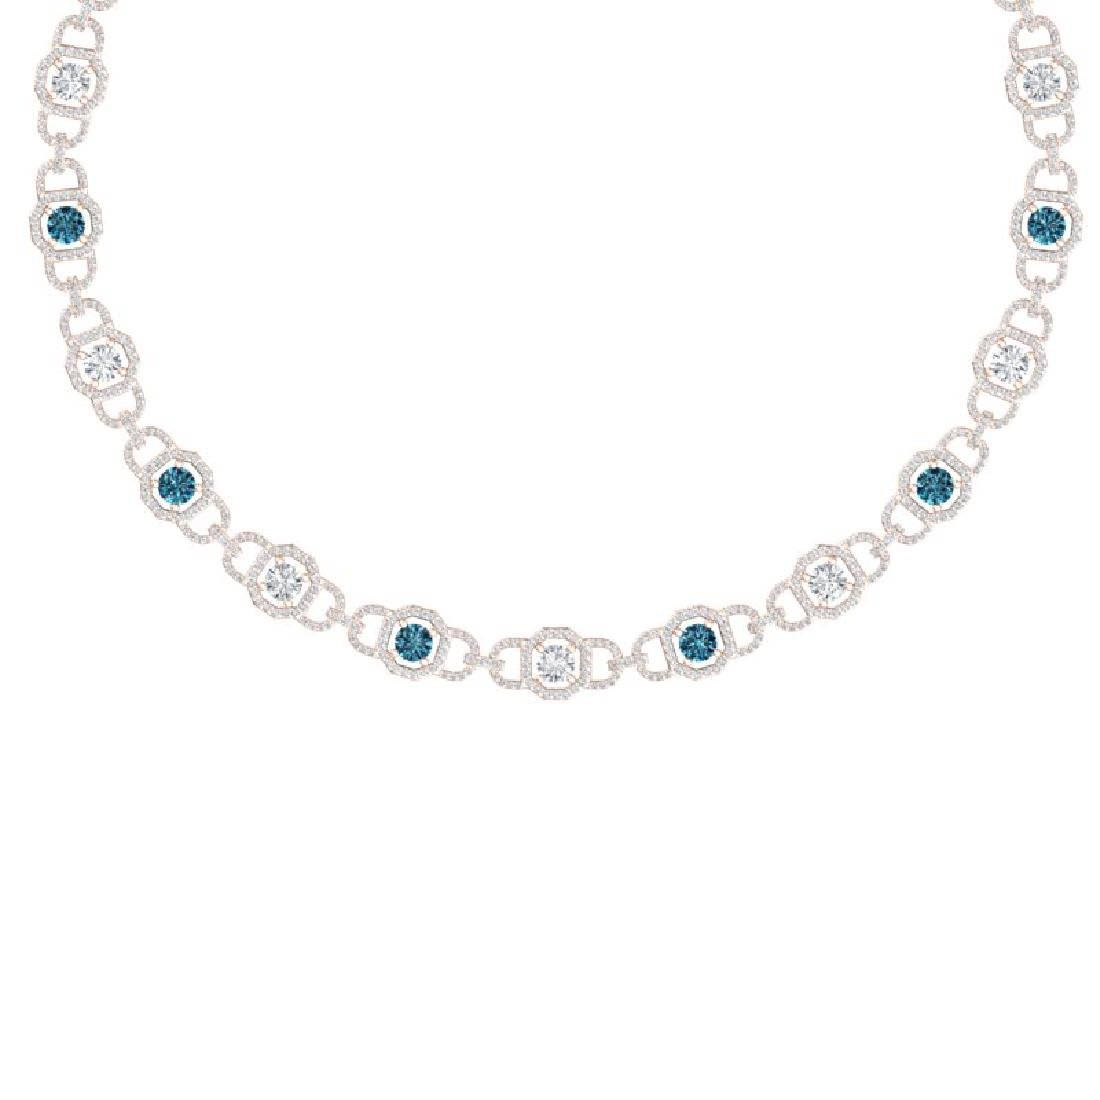 25 CTW SI/I Intense Blue And White Diamond Necklace 18K